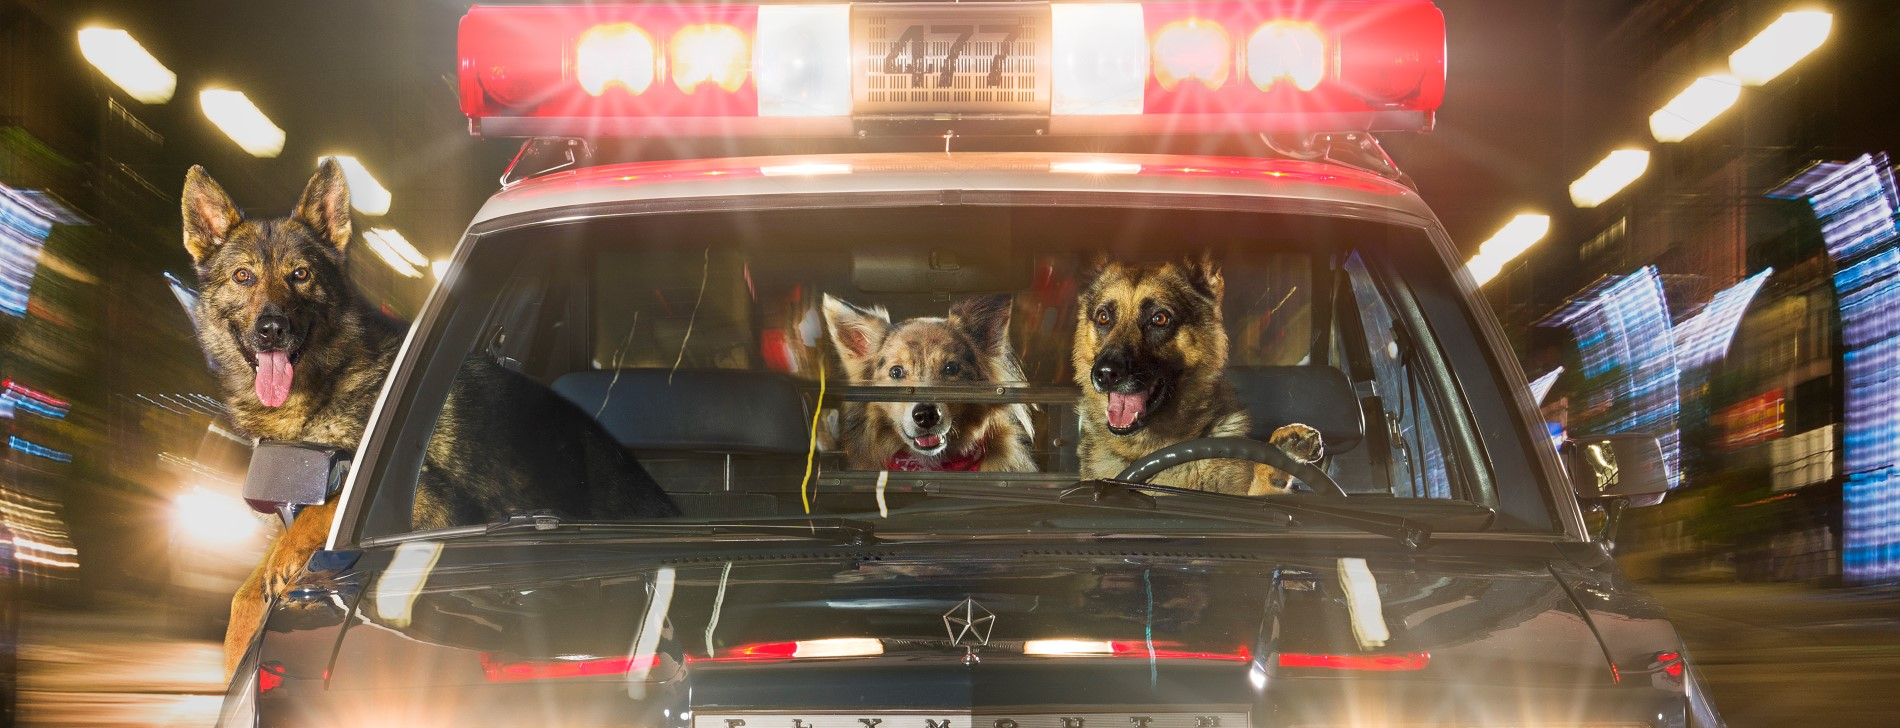 Canines driving police cruiser